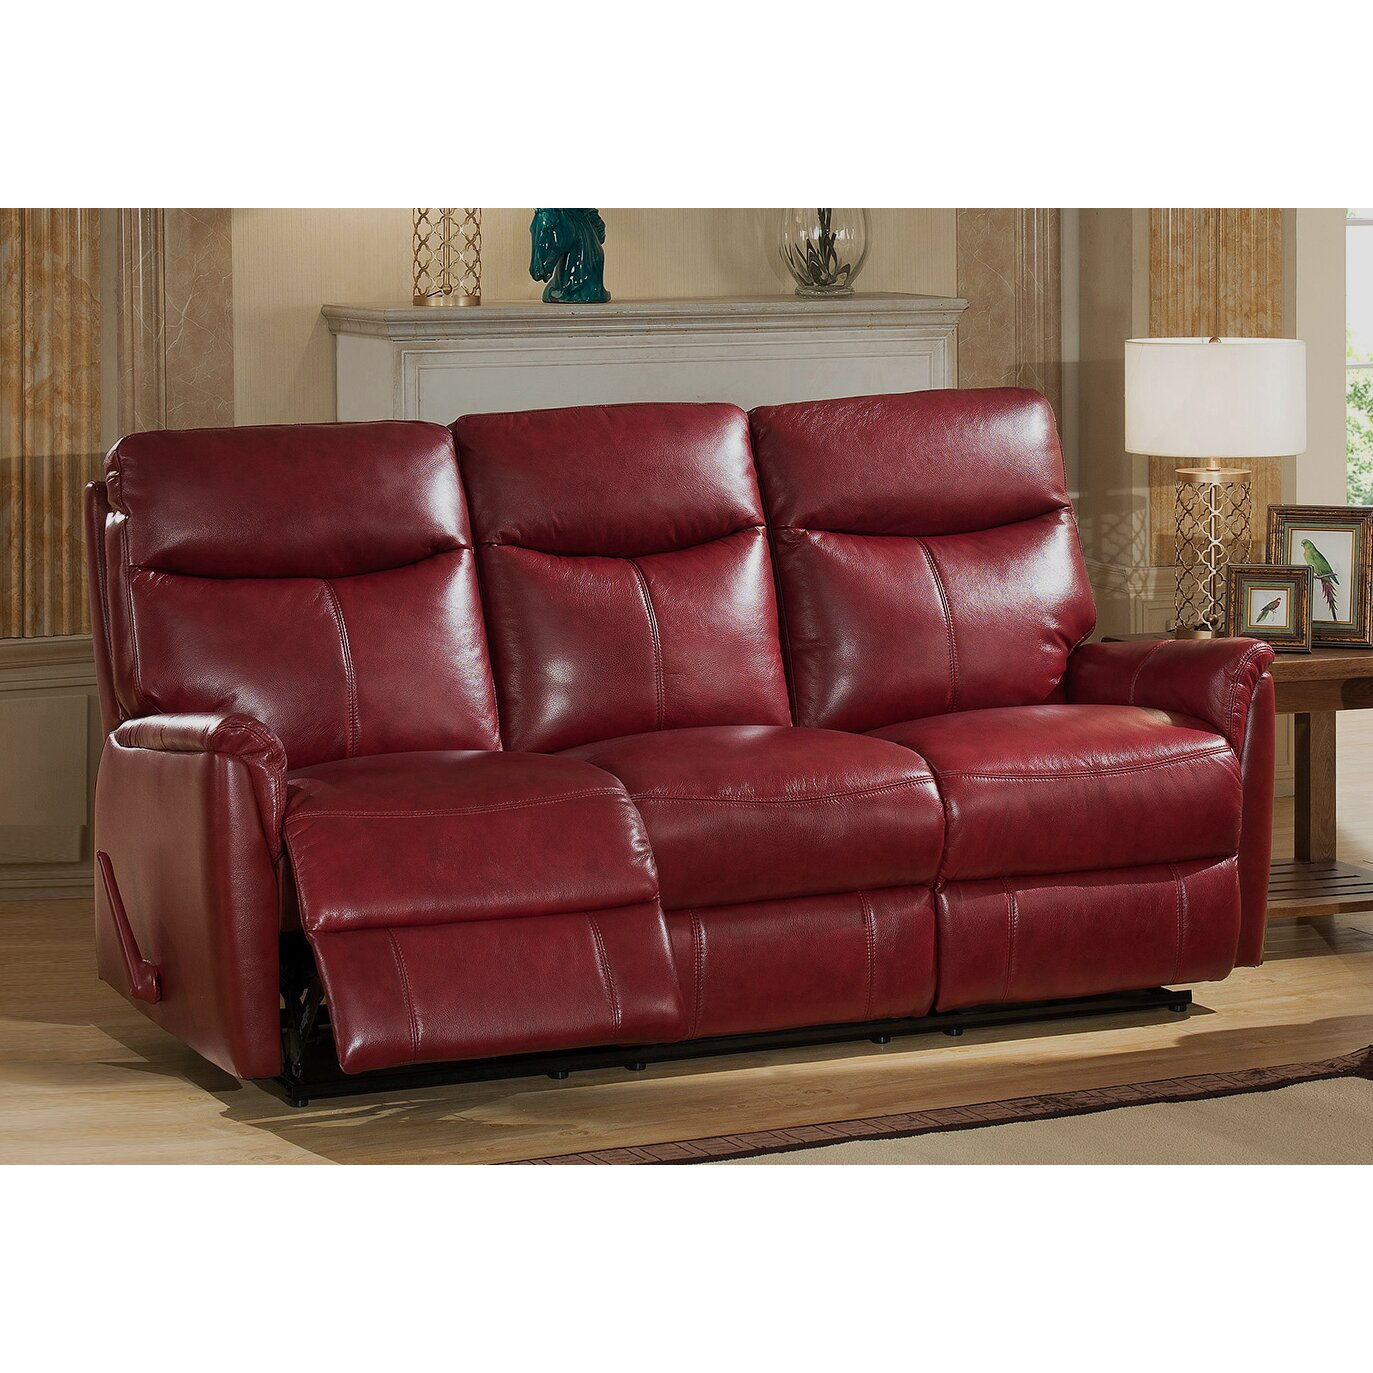 Amax napa top grain leather lay flat reclining sofa and for Leather sofa and loveseat set